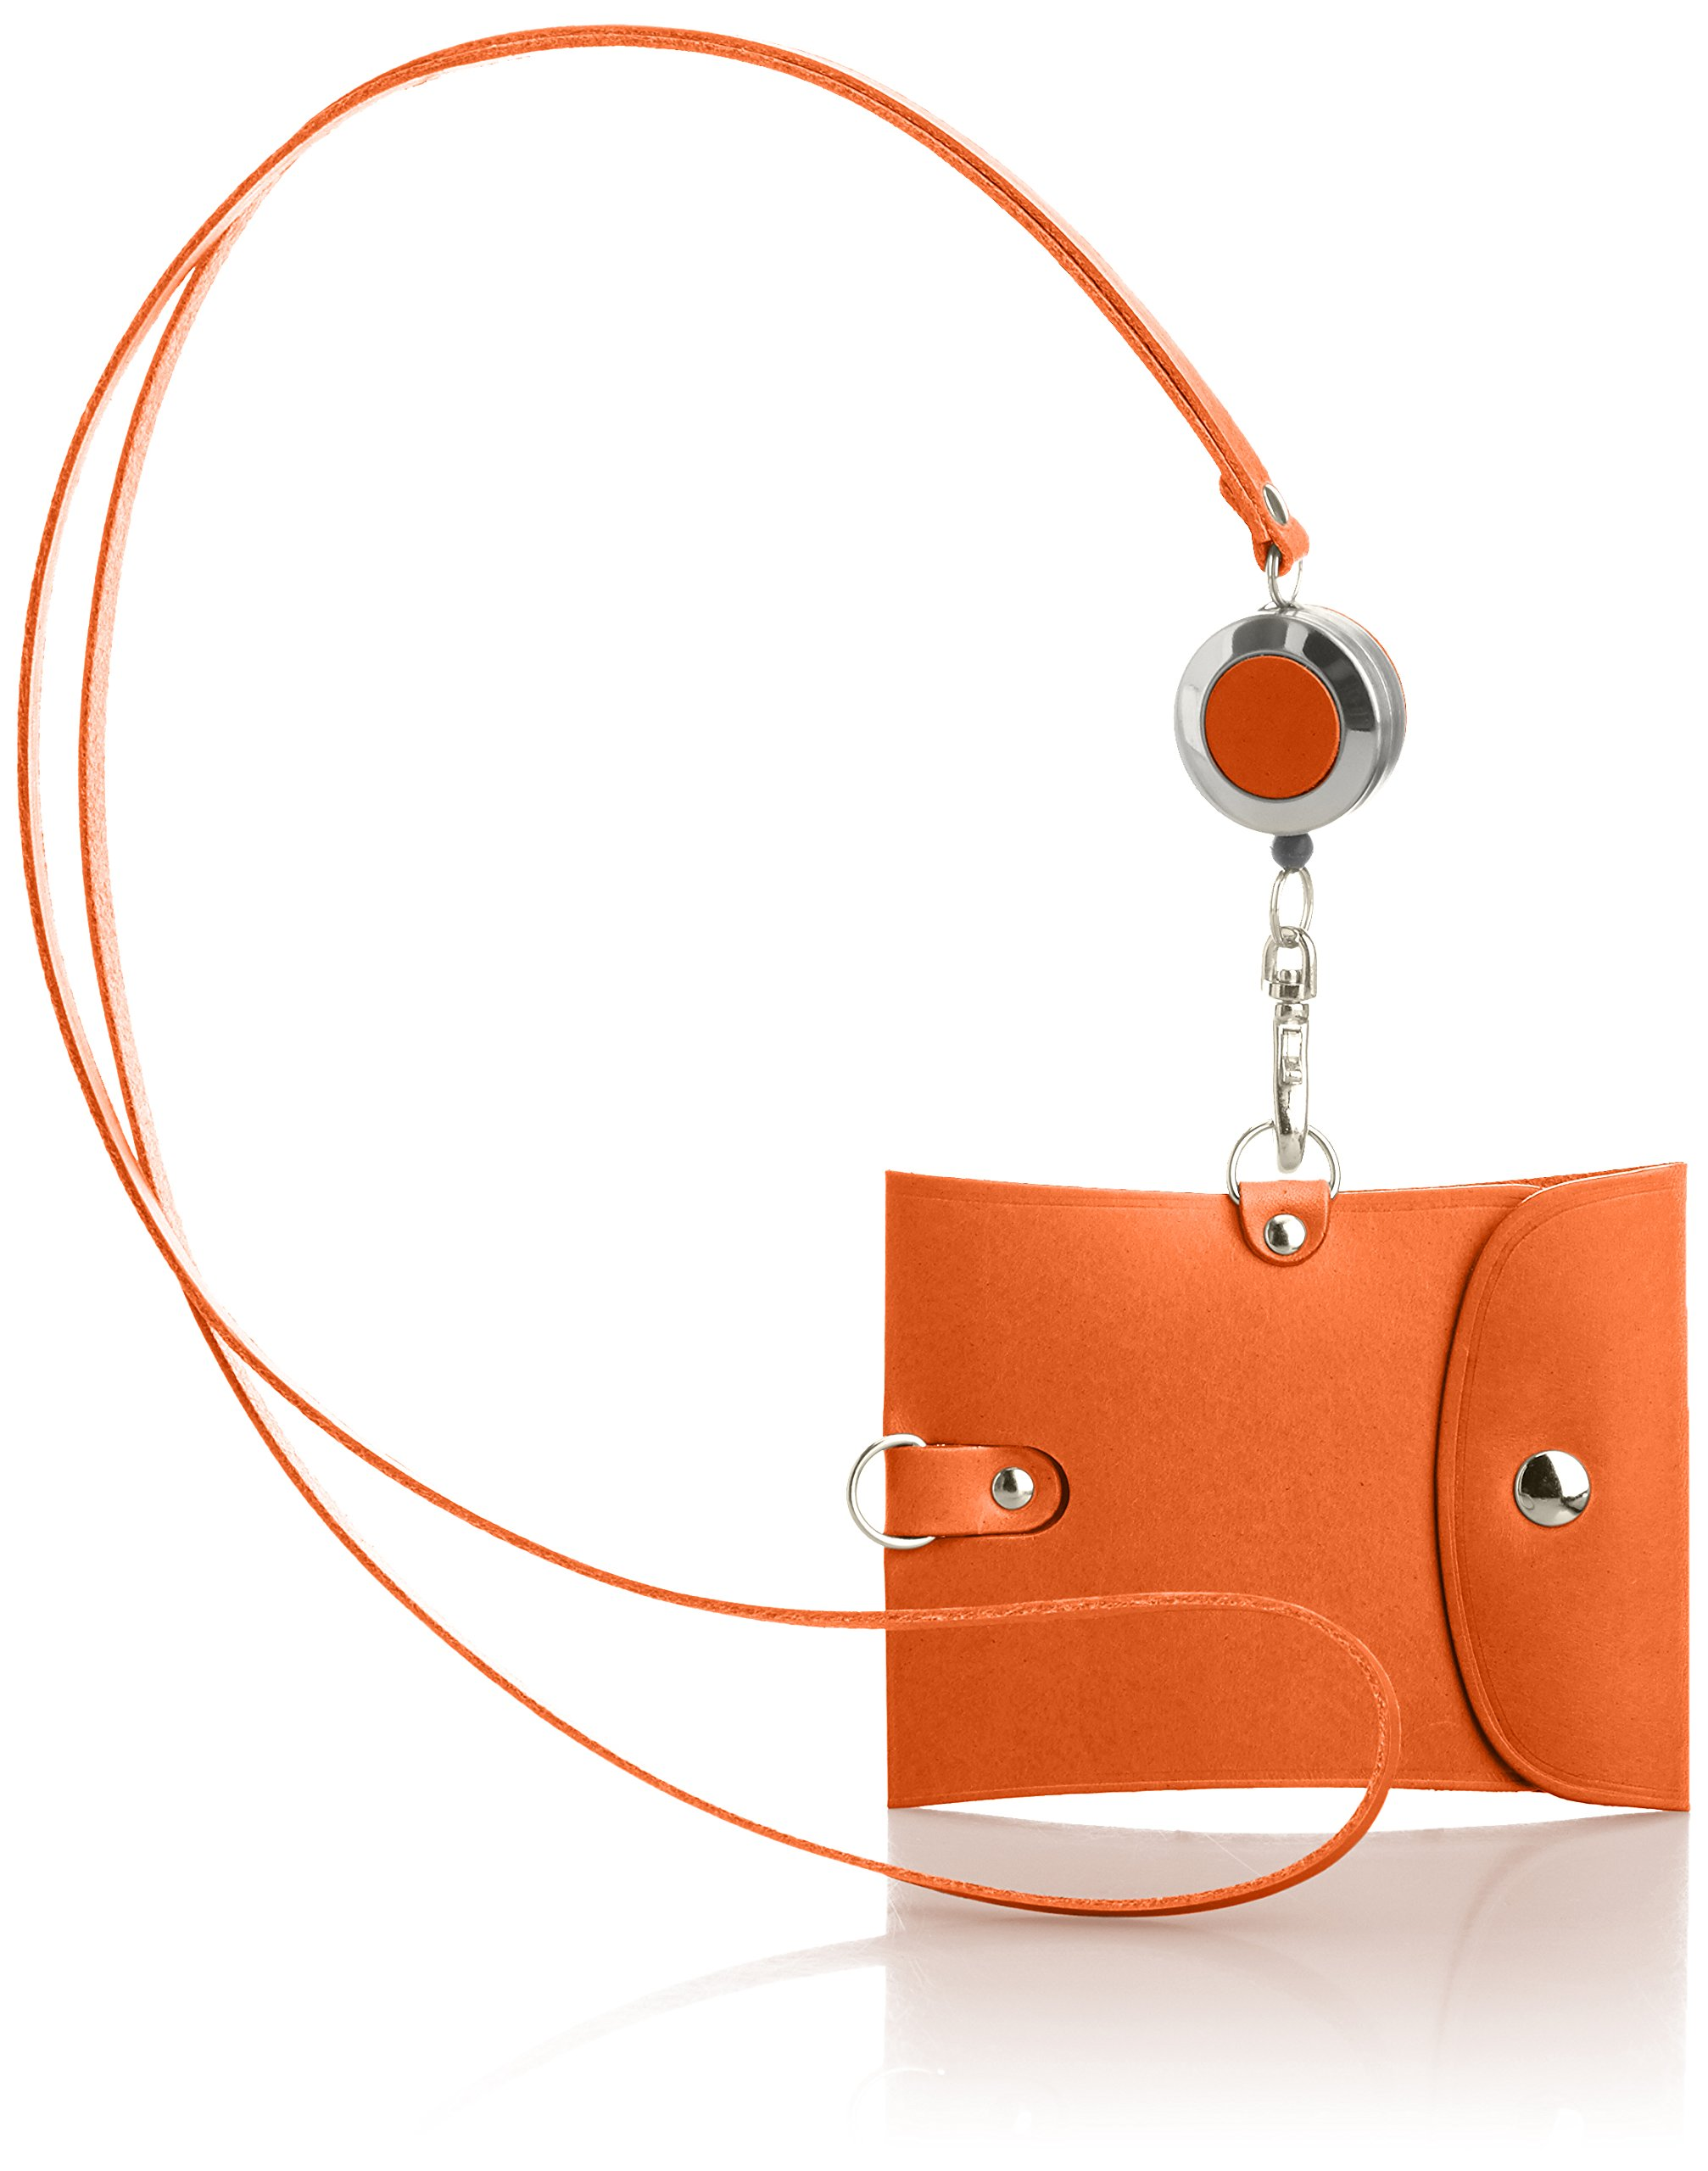 Vintage Revival Productions Pass Holder with reel 59218 Orange by Vintage Revival Productions